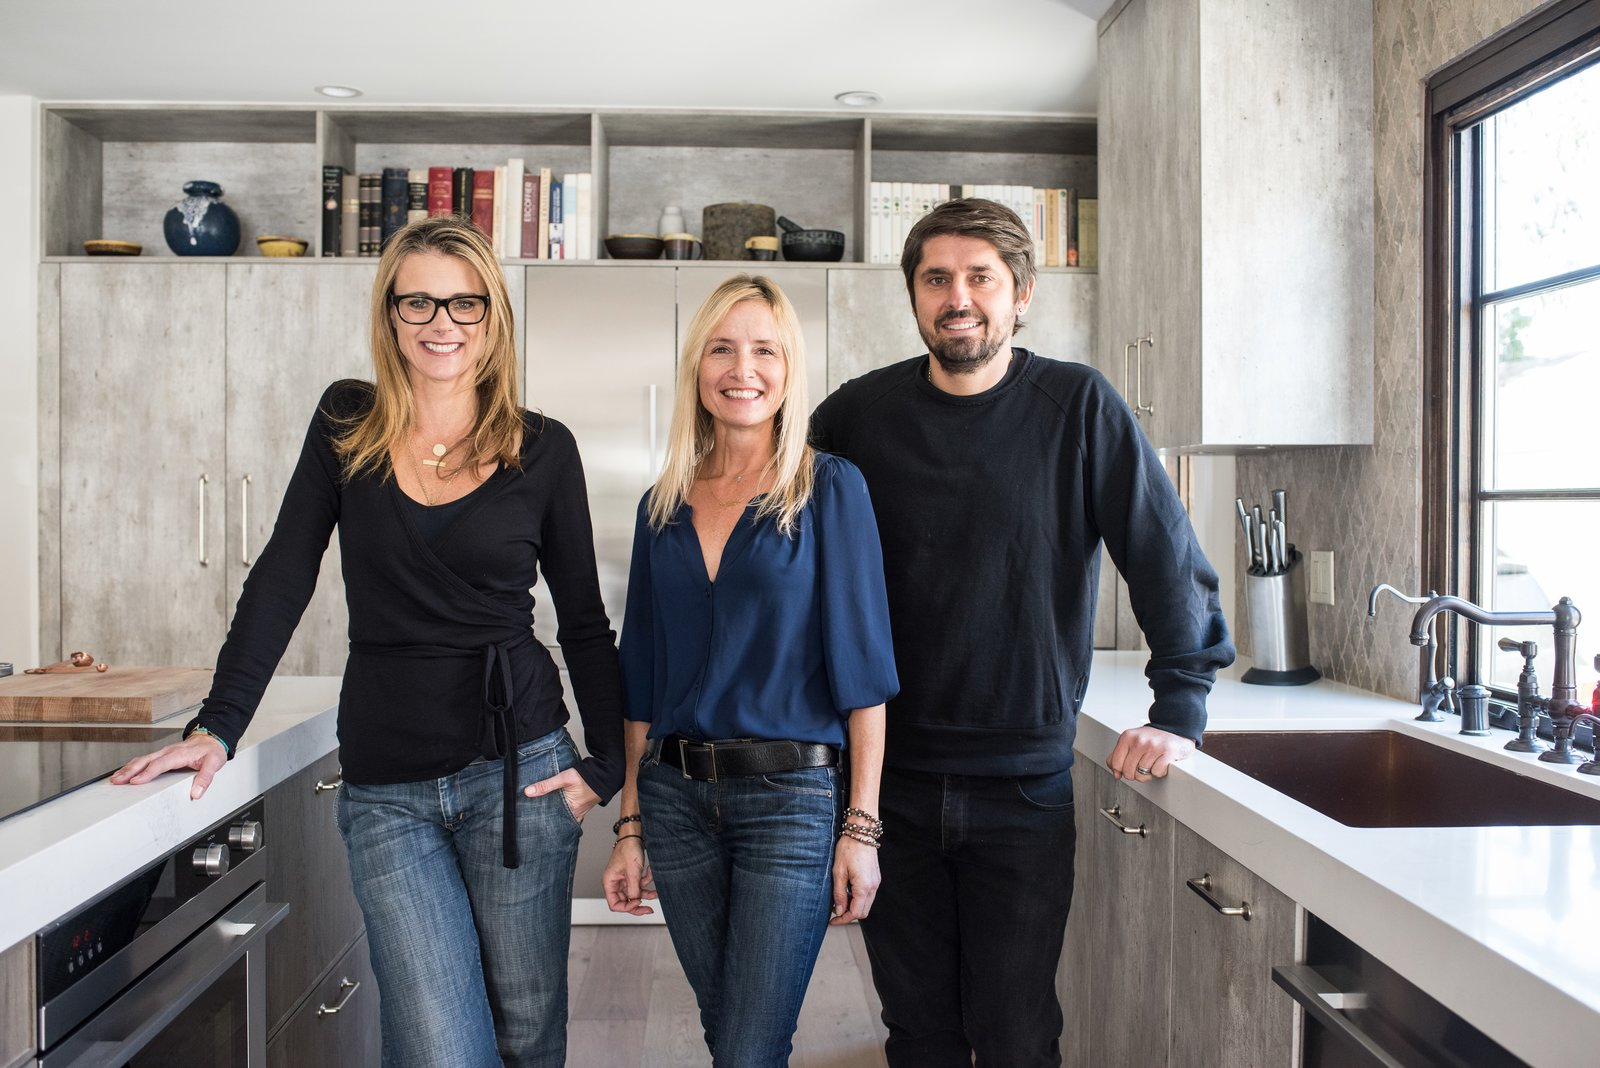 Krissy Lefebvre, left, and Ludo Lefebvre, right, pose in the redone kitchen with their designer Ginny Capo, who is based in Santa Monica.   from Chef Ludo Lefebvre's Modern Kitchen With Rustic Roots